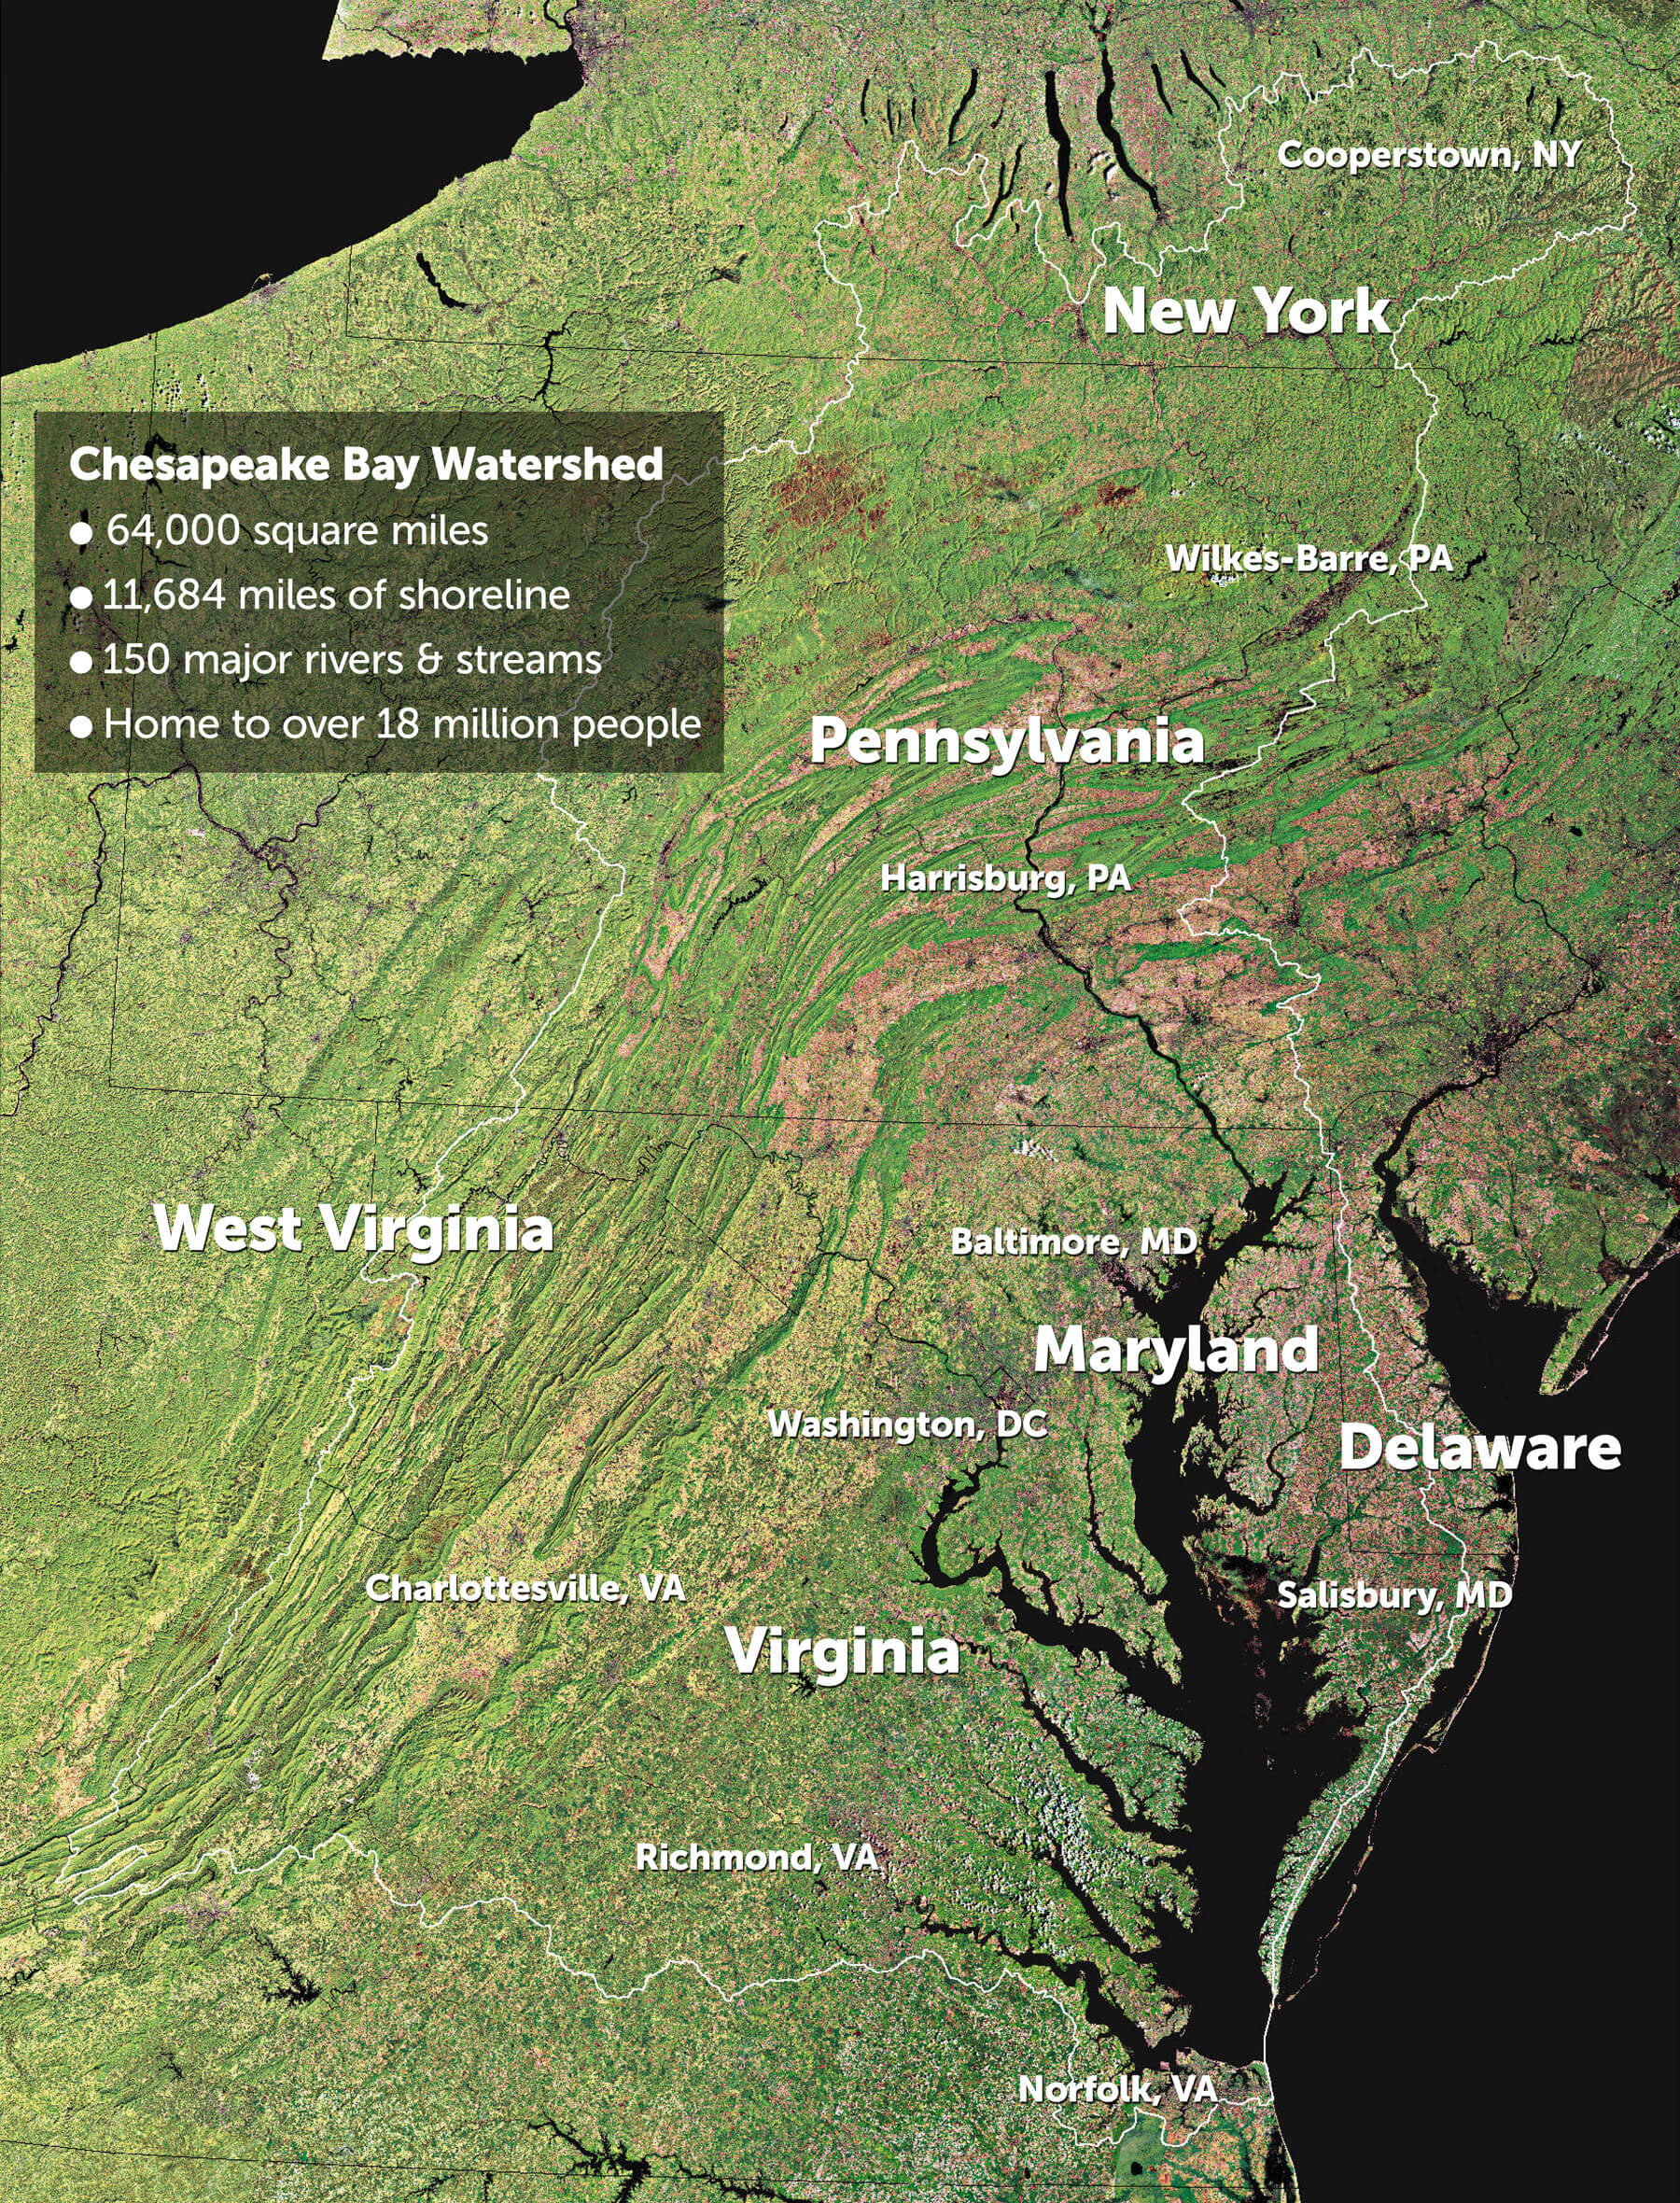 Picture of the Chesapeake Bay Watershed